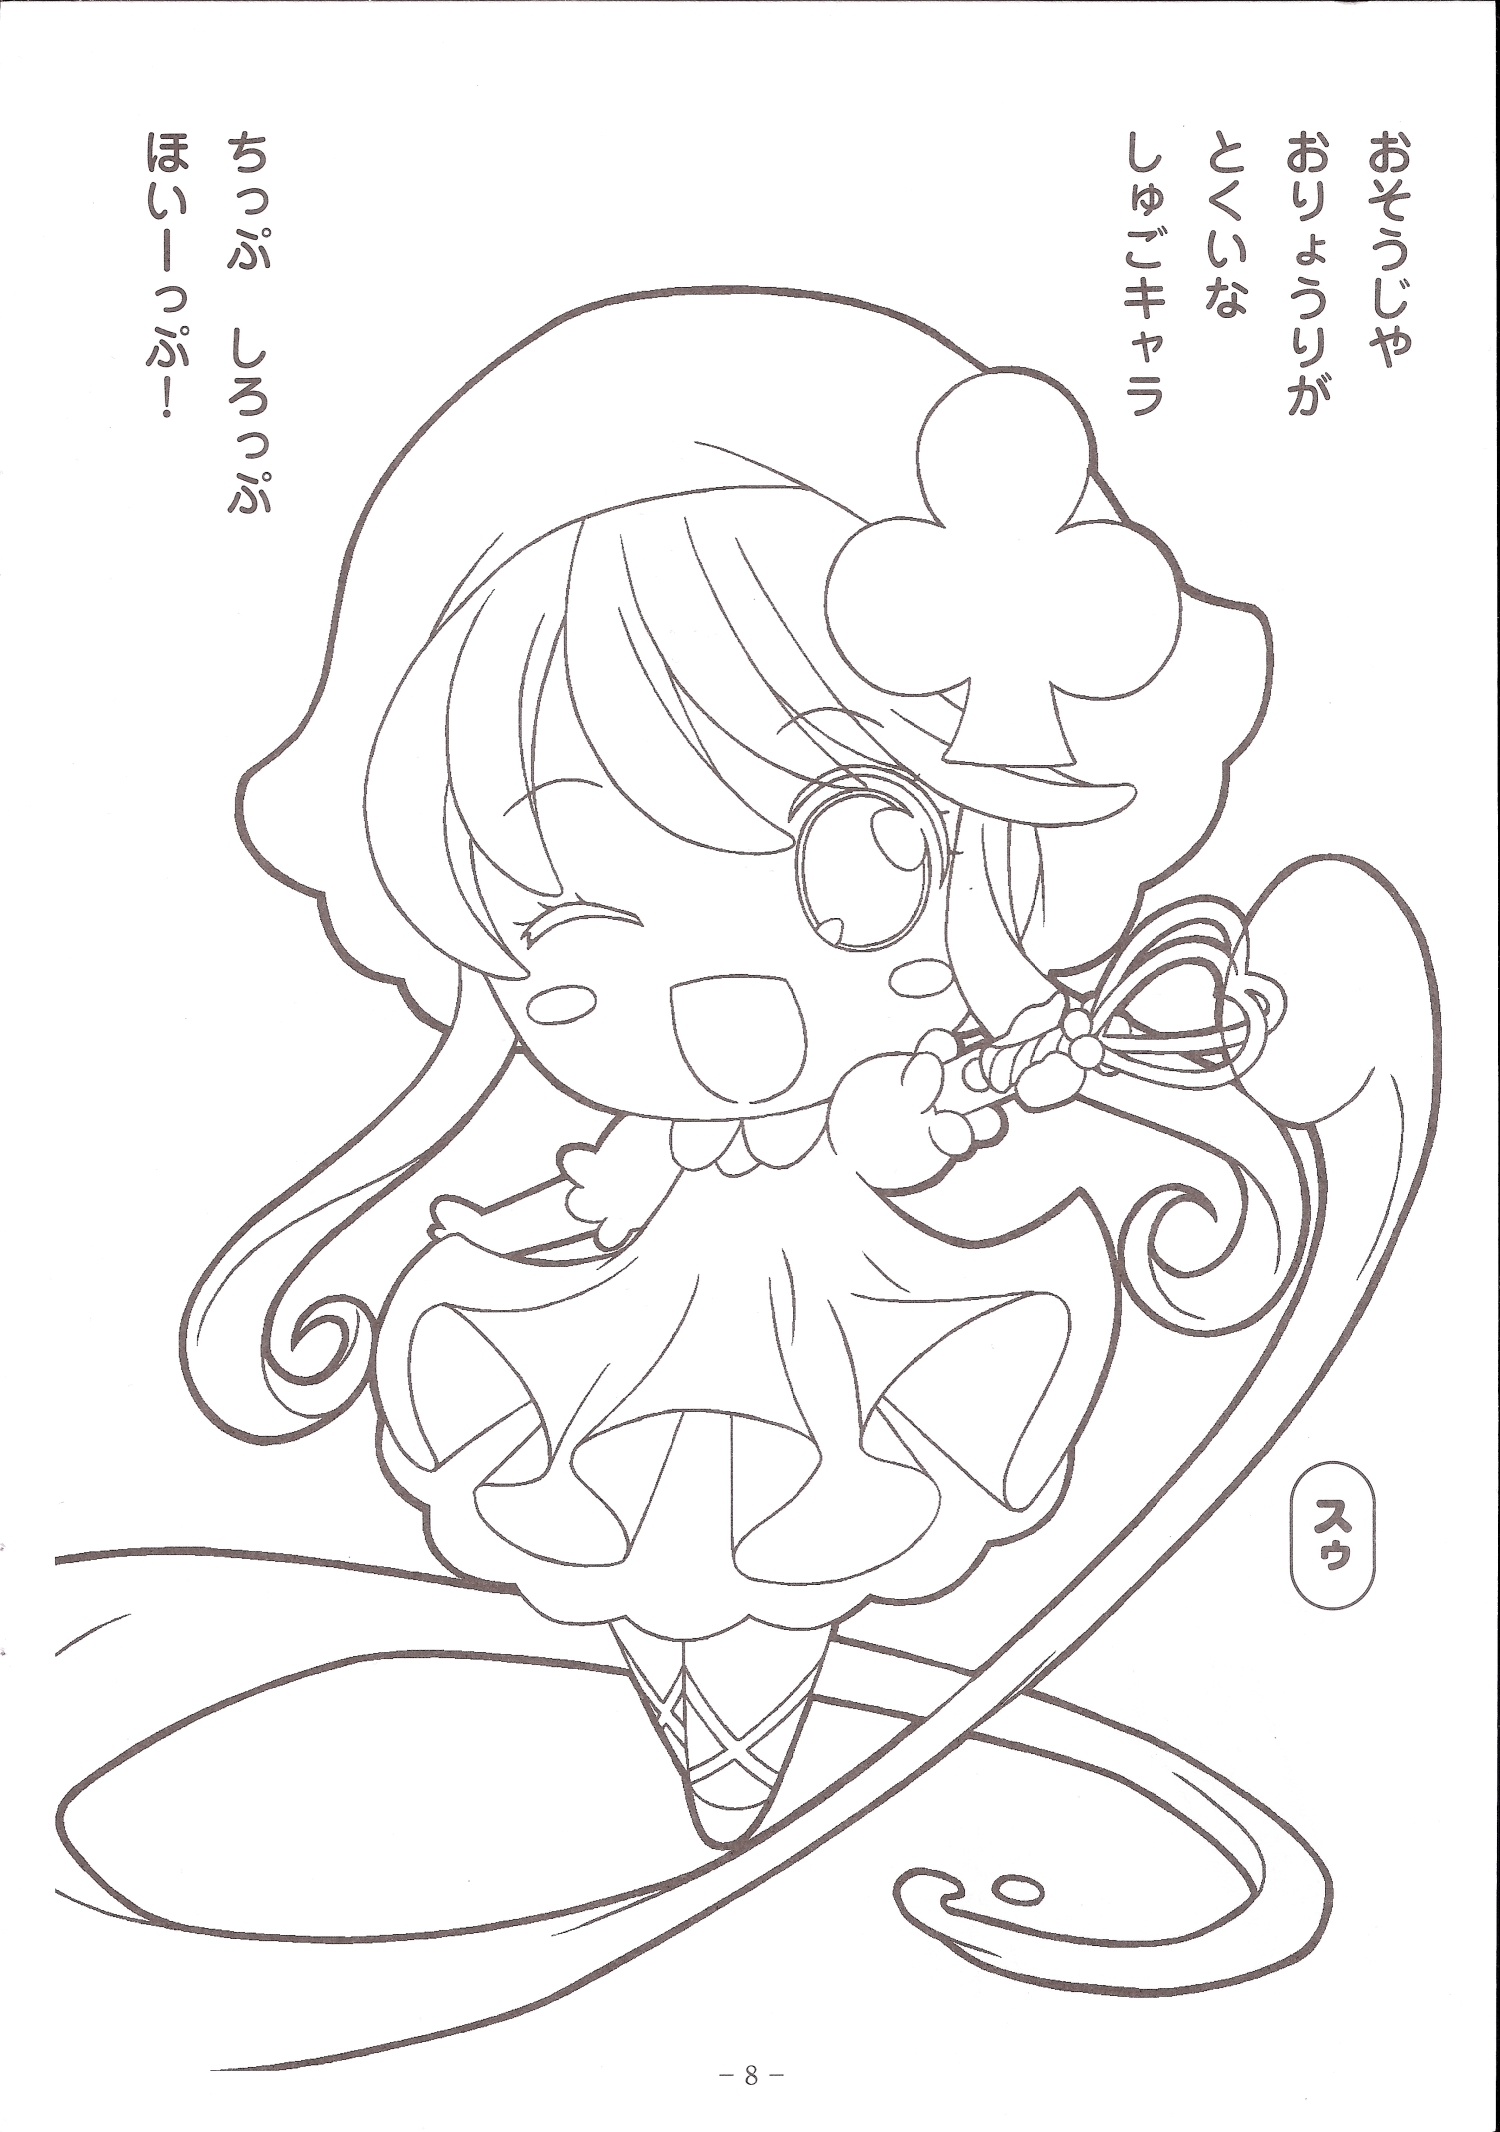 Shugo Chara Colouring Pages Page 2 Shugo Chara Coloring Pages